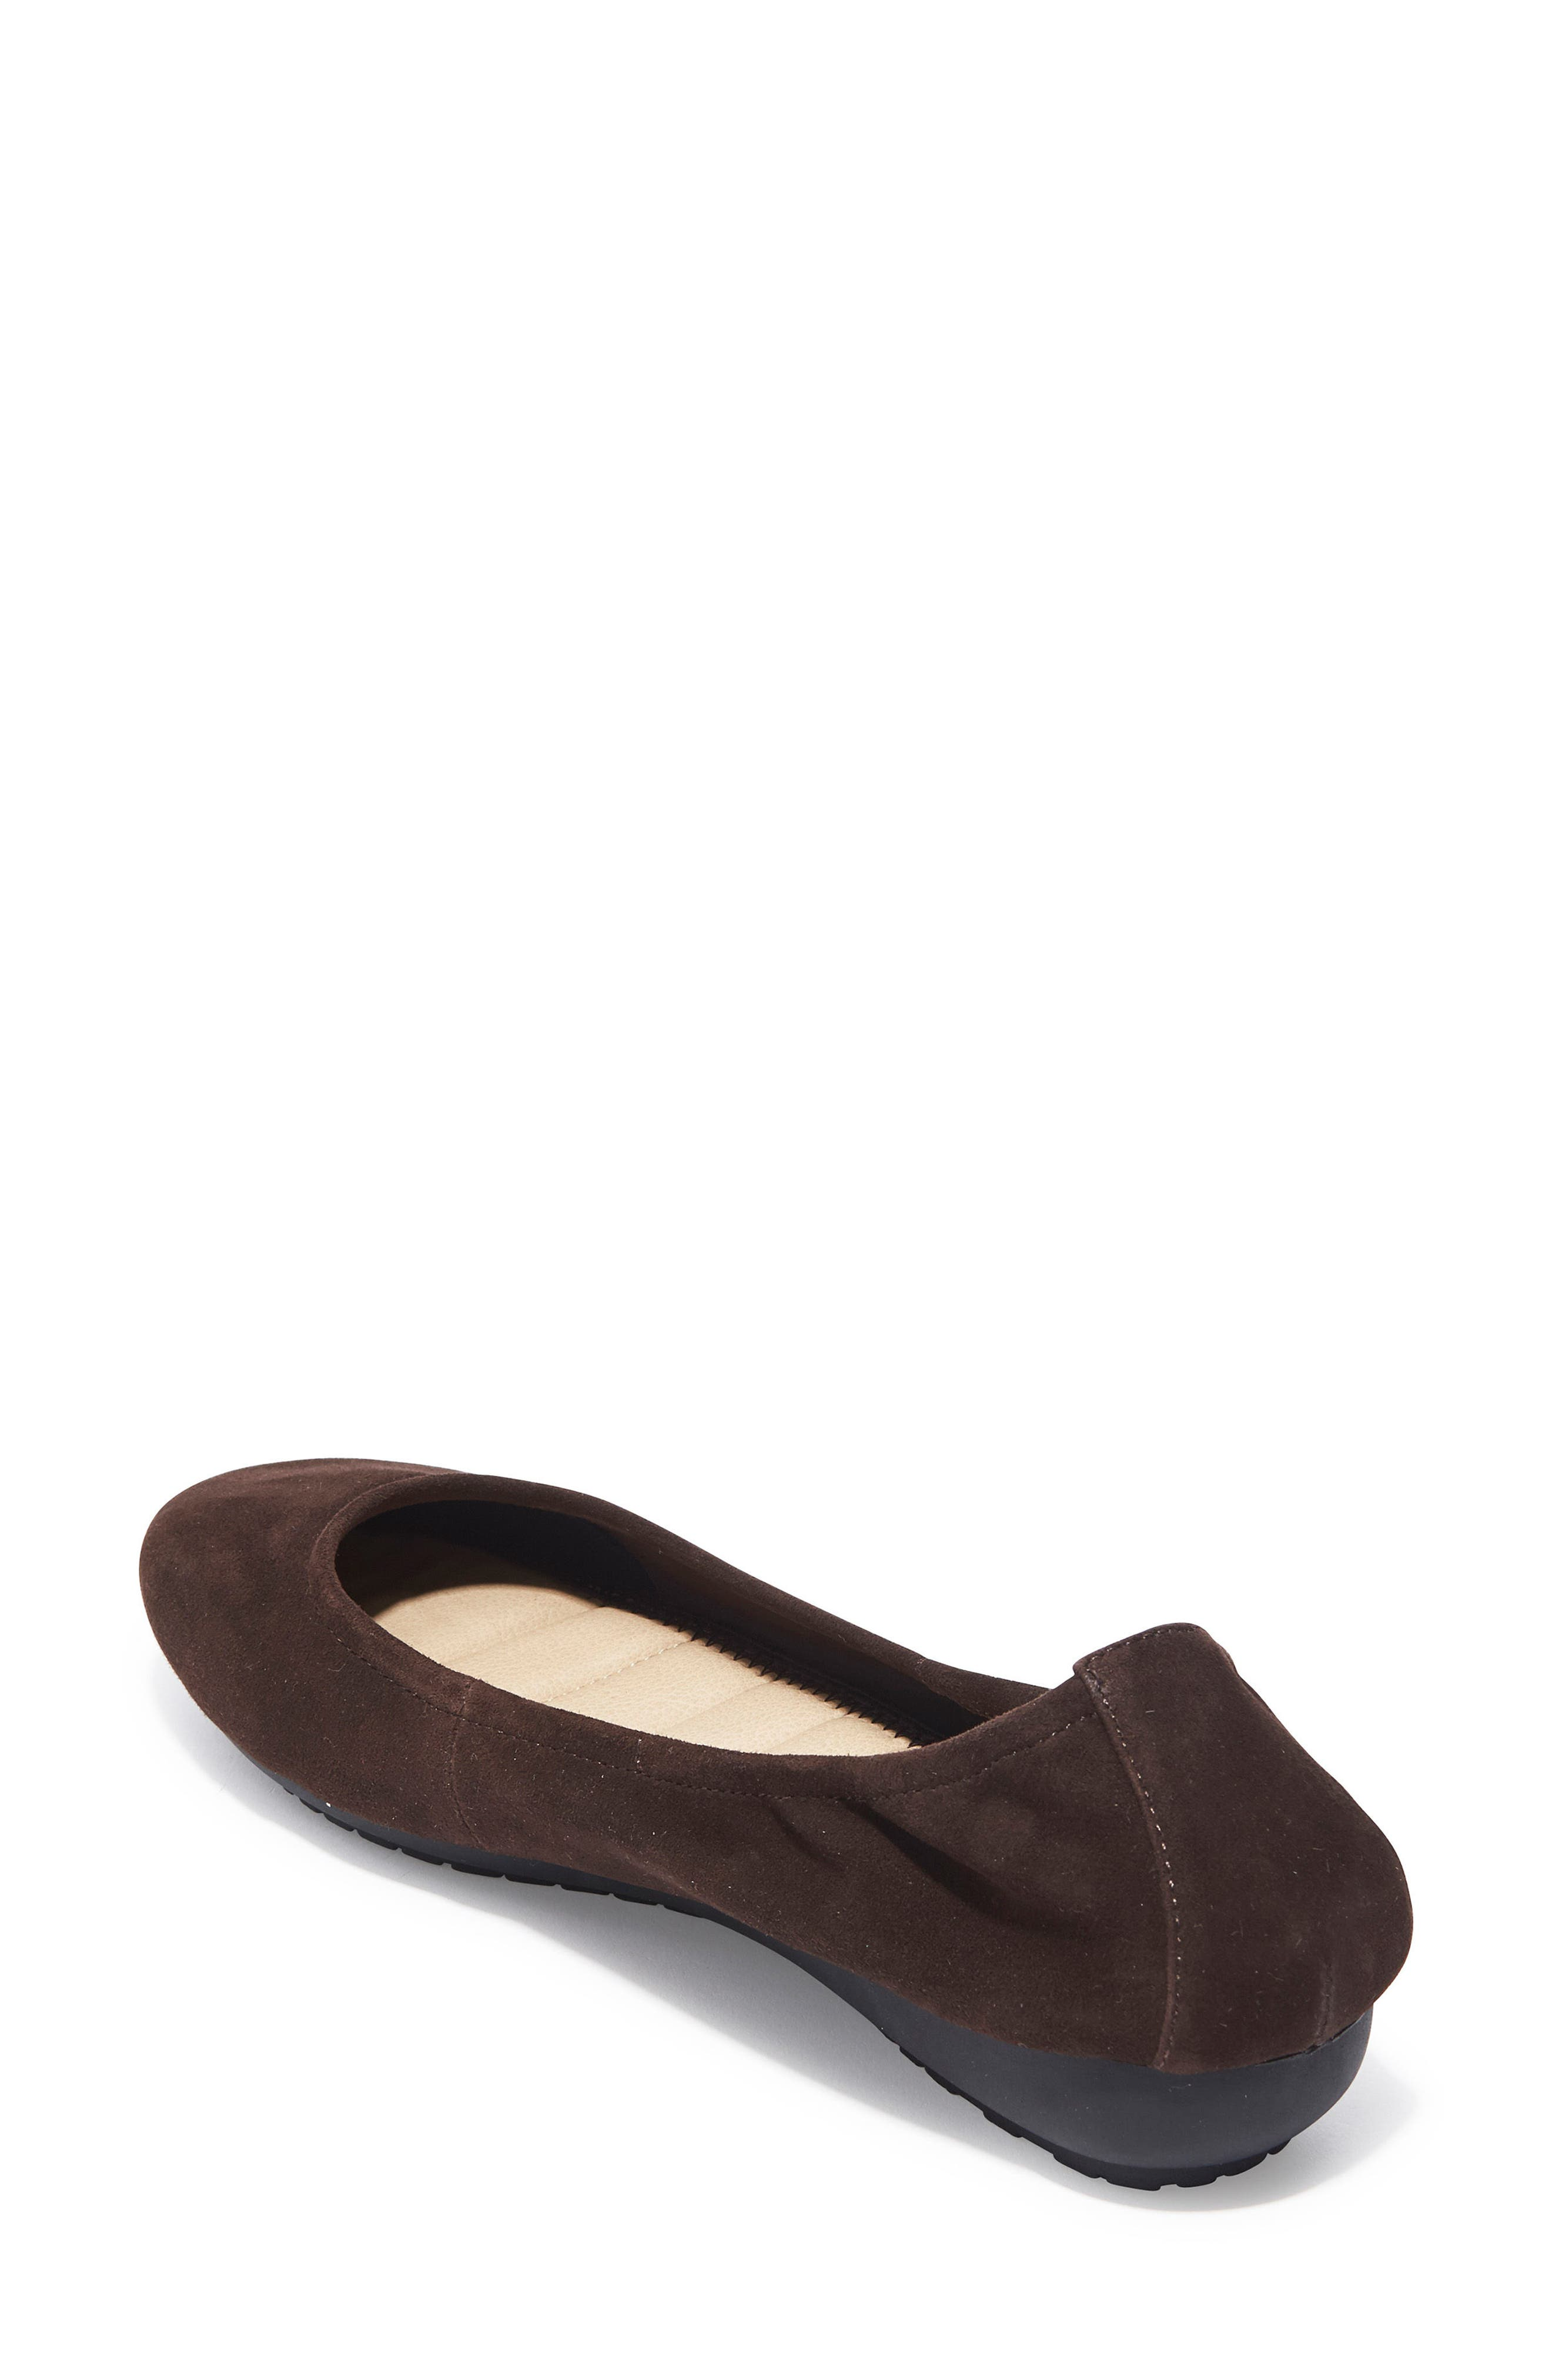 Alternate Image 2  - Me Too Janell Sliver Wedge Flat (Women)